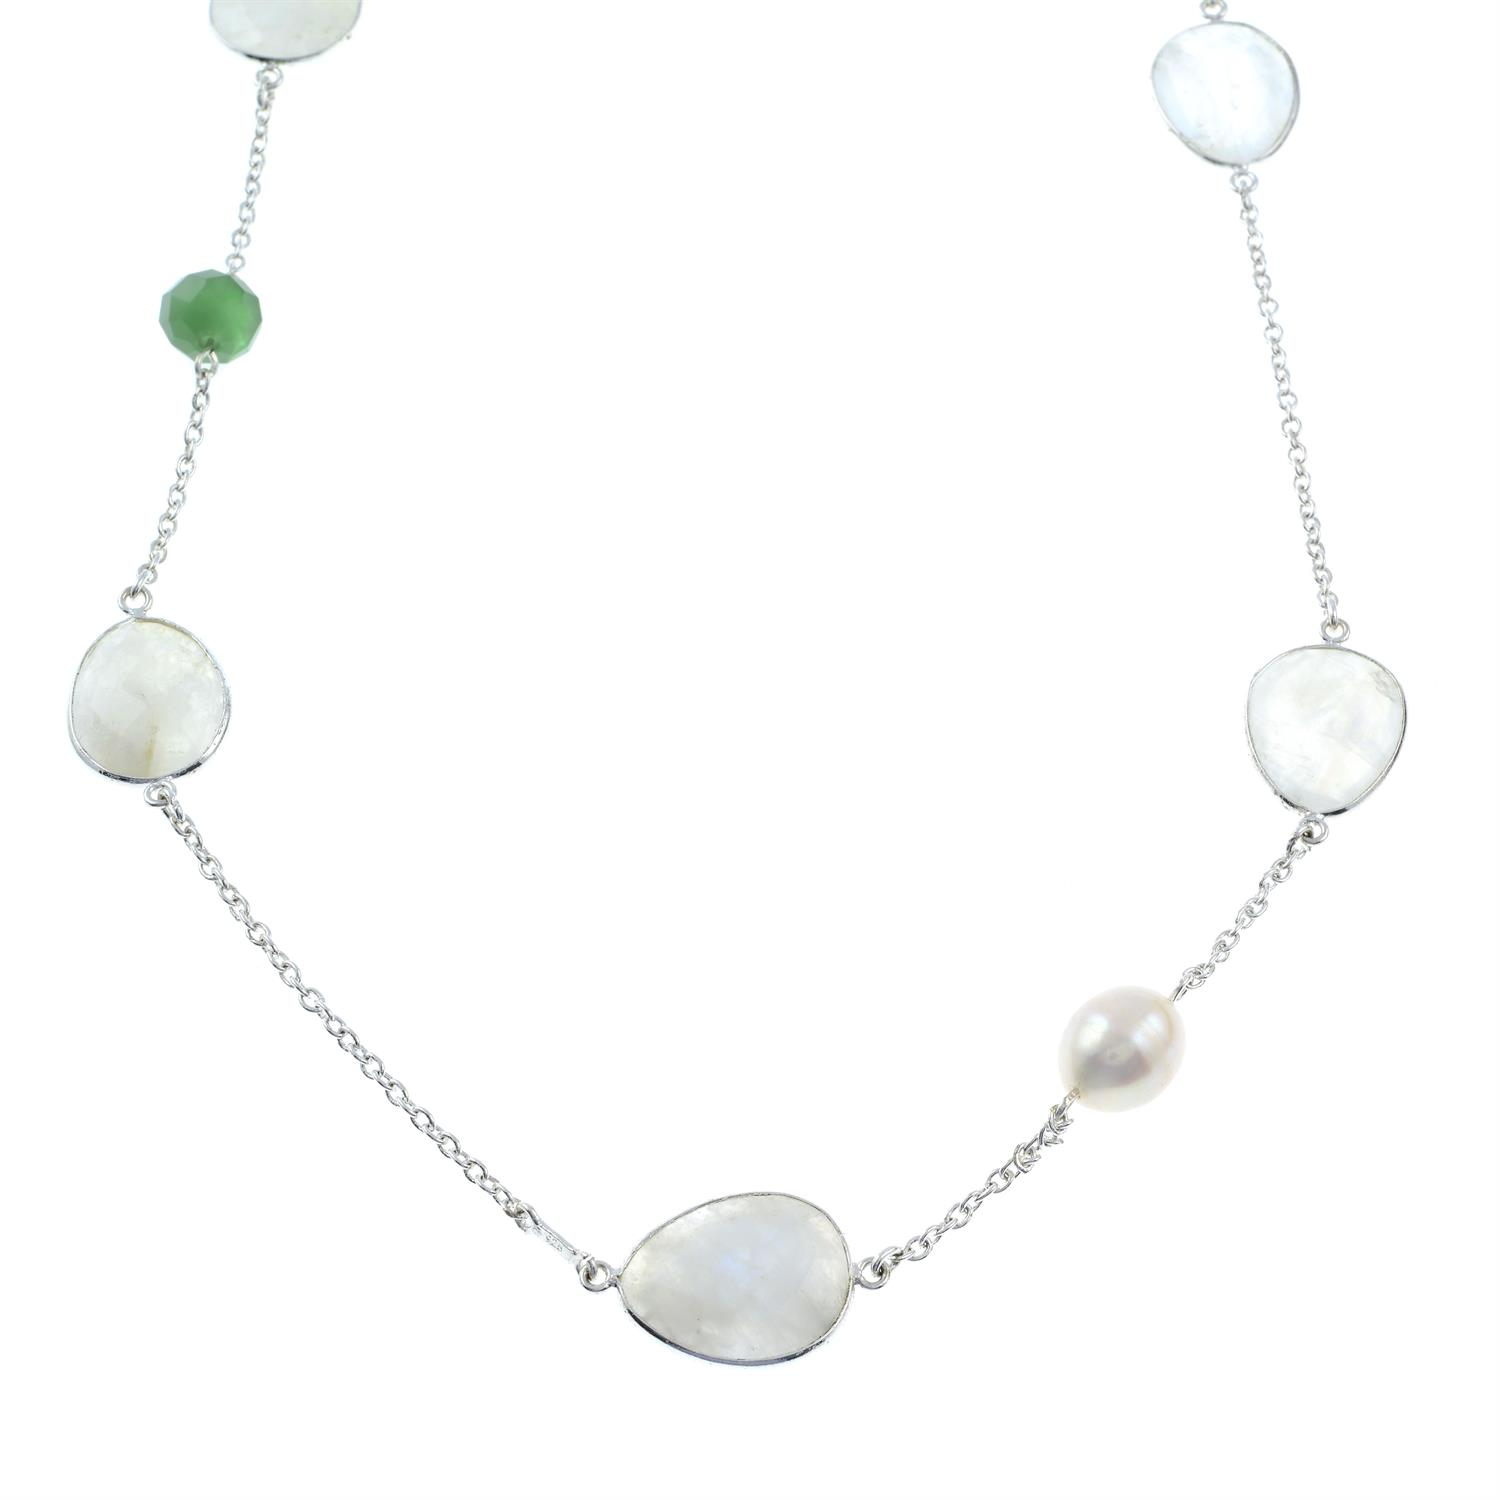 A moonstone and green quartz necklace, together with a pair of cultured pearl and jade drop